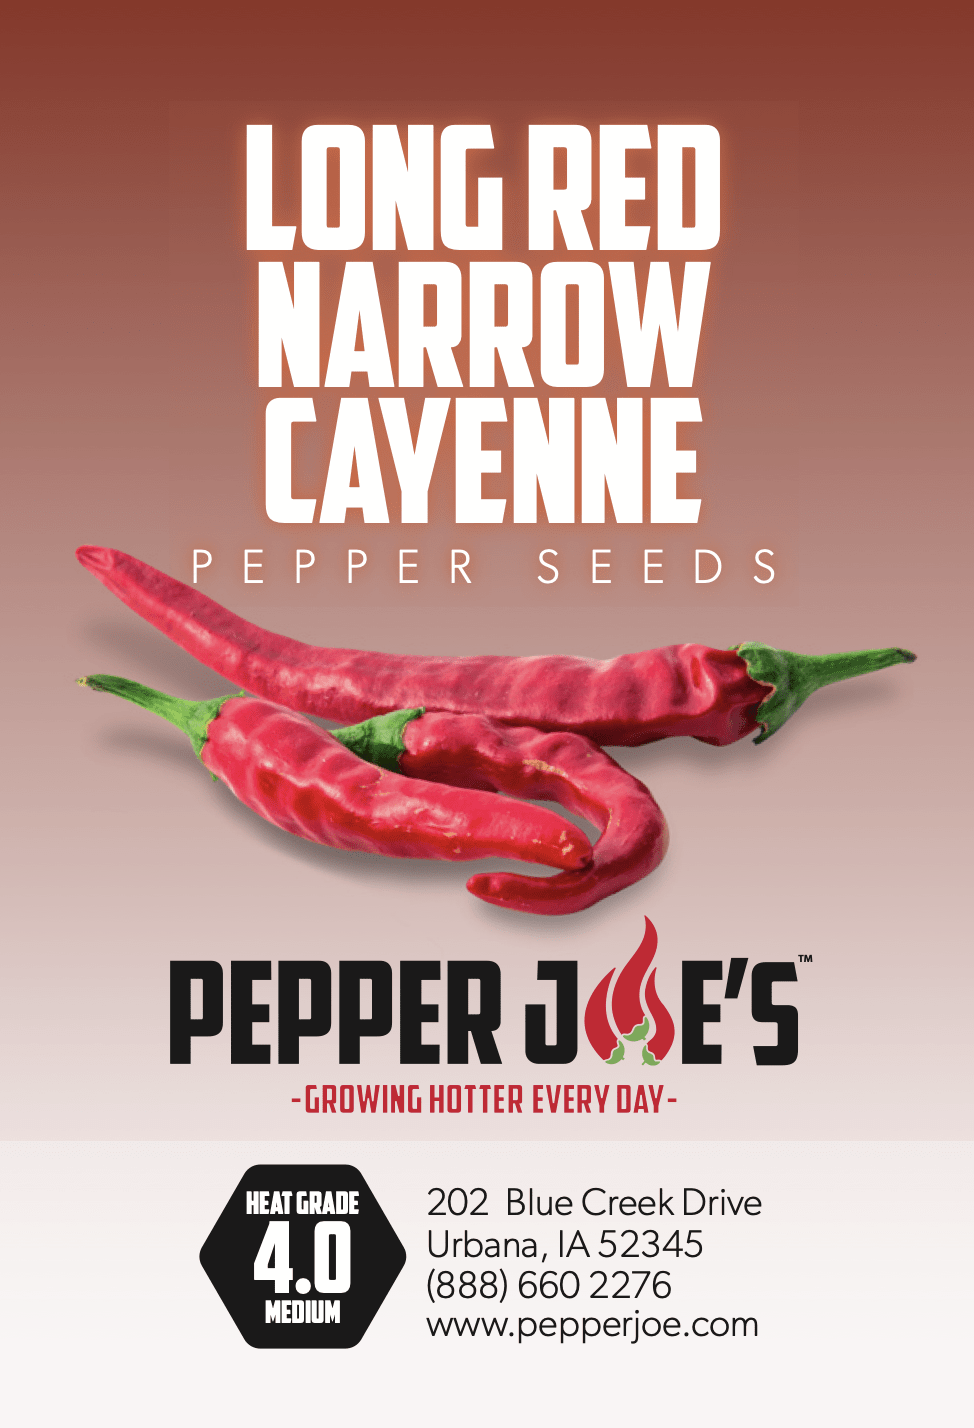 pepper joe's cayenne long thin pepper